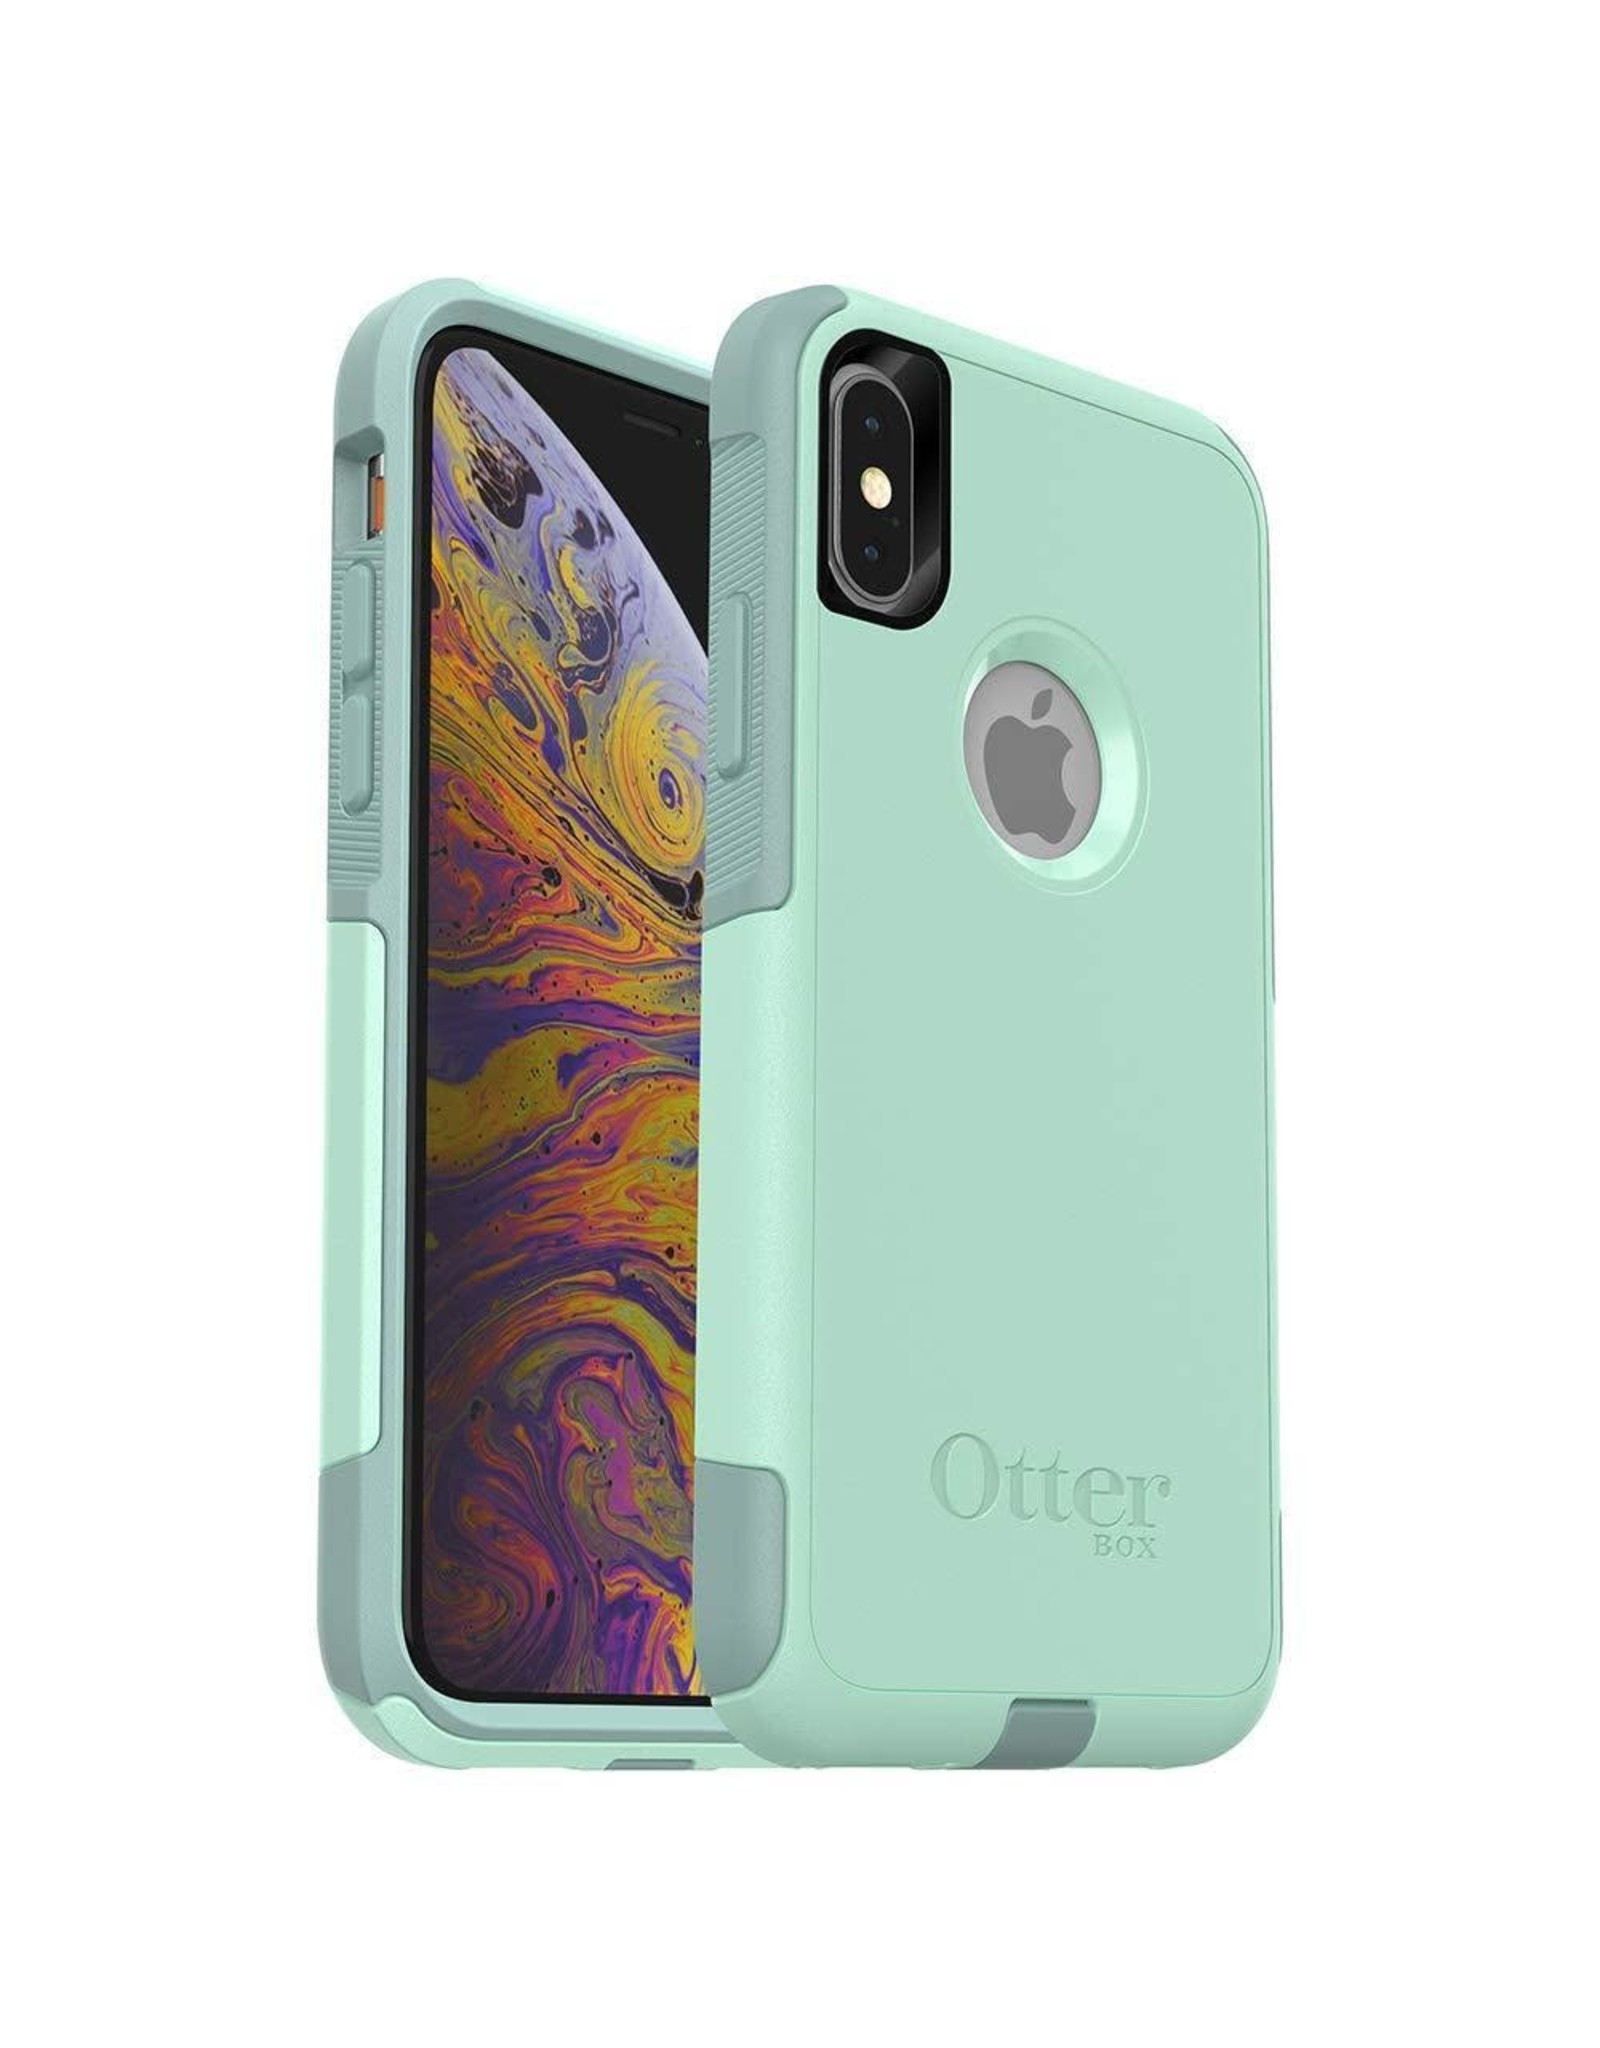 Otterbox OtterBox Commuter Case suits iPhone X - Ocean Way EOL